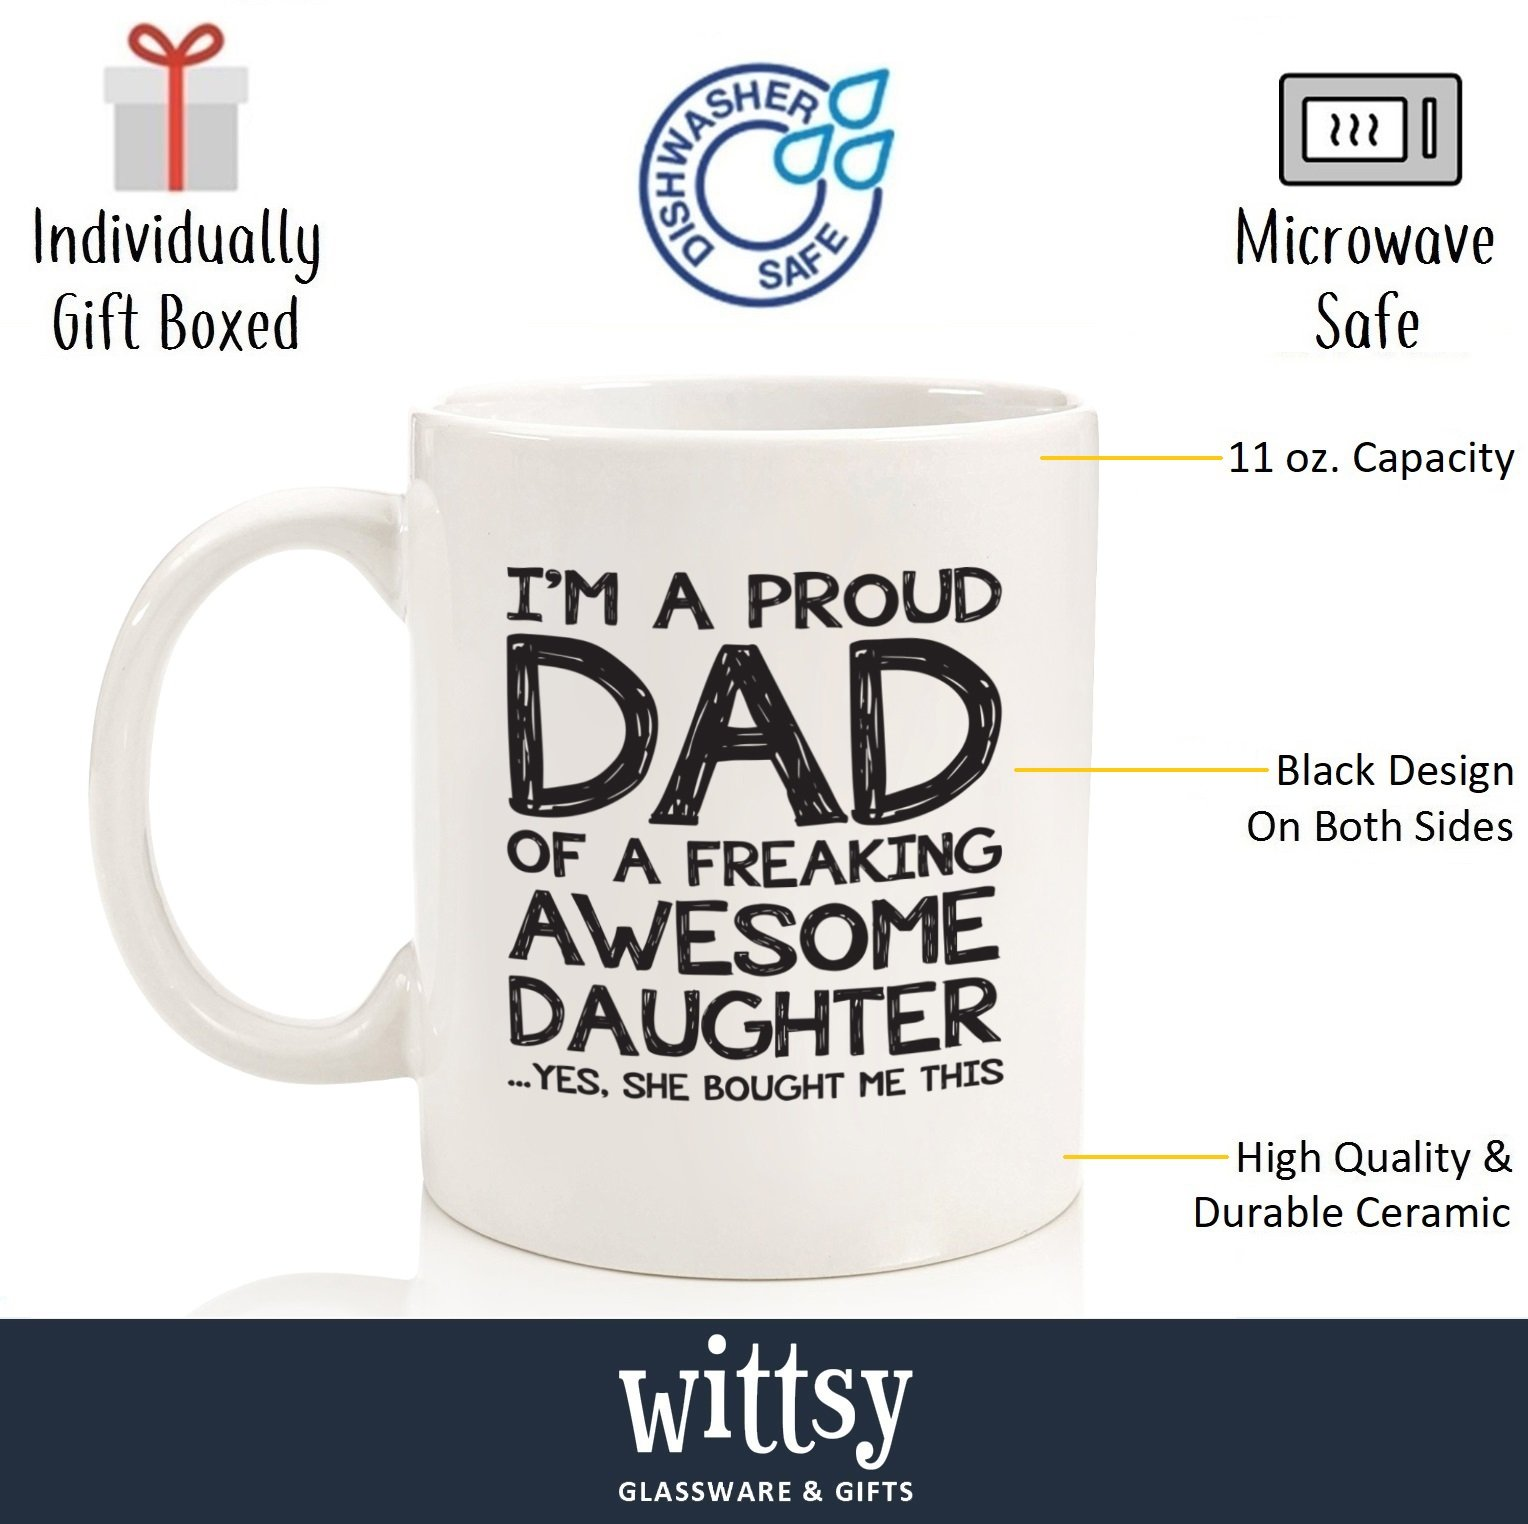 Proud Dad Of A Freaking Awesome Daughter Funny Mug - Best Fathers Day Gag Gifts For Dad From Daughter - Unique Gift Idea For Men, Him - Cool Birthday Present For a Father - Fun Novelty Coffee Cup by Wittsy Glassware and Gifts (Image #2)